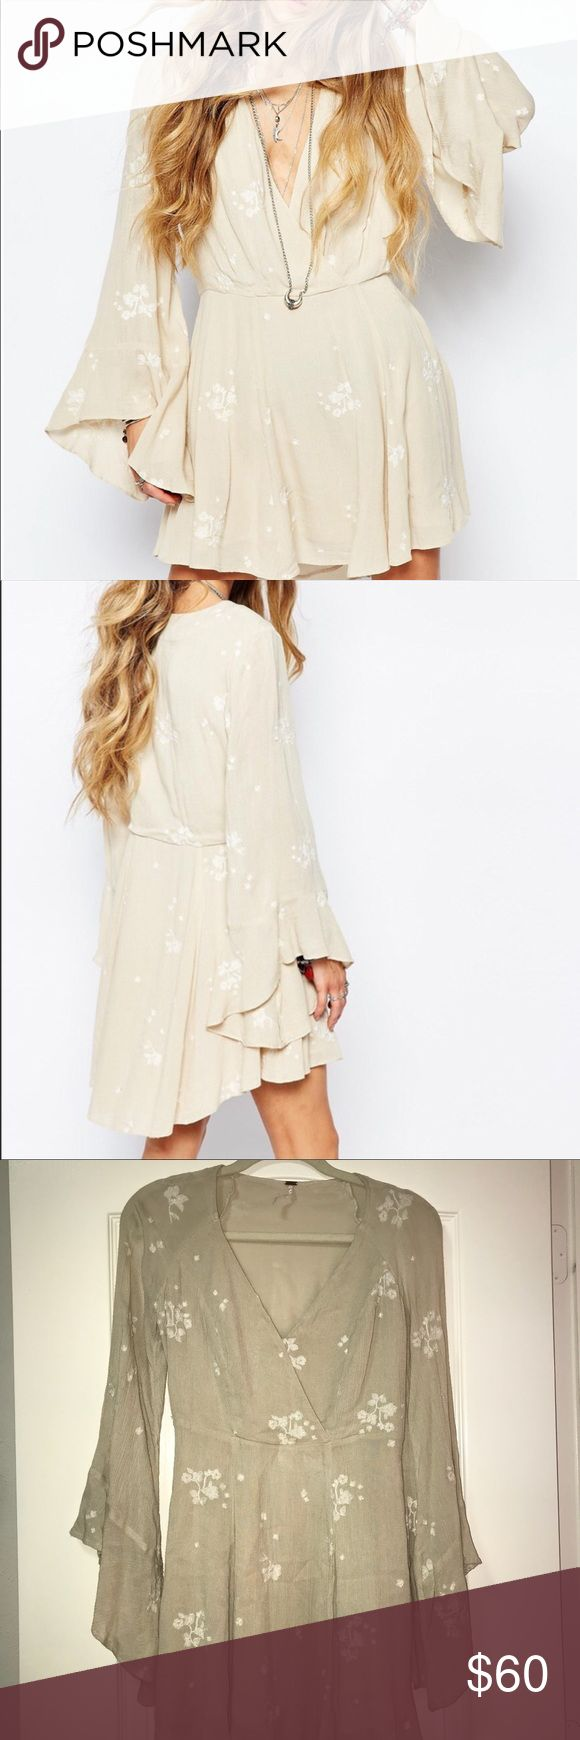 Free People Jasmine Mini Dress Never Worn. Almond combo Free People Jasmine Embroidered Mini Dress is an airy Mini Dress with a flared skirt. Ruffle cuffs and floral embroidery accentuate the romantic feel. Crossover V neckline. Long sleeves. Lined. Size 0.  Shell 100% Rayon Lining 65% rayon/35% cotton Free People Dresses Mini